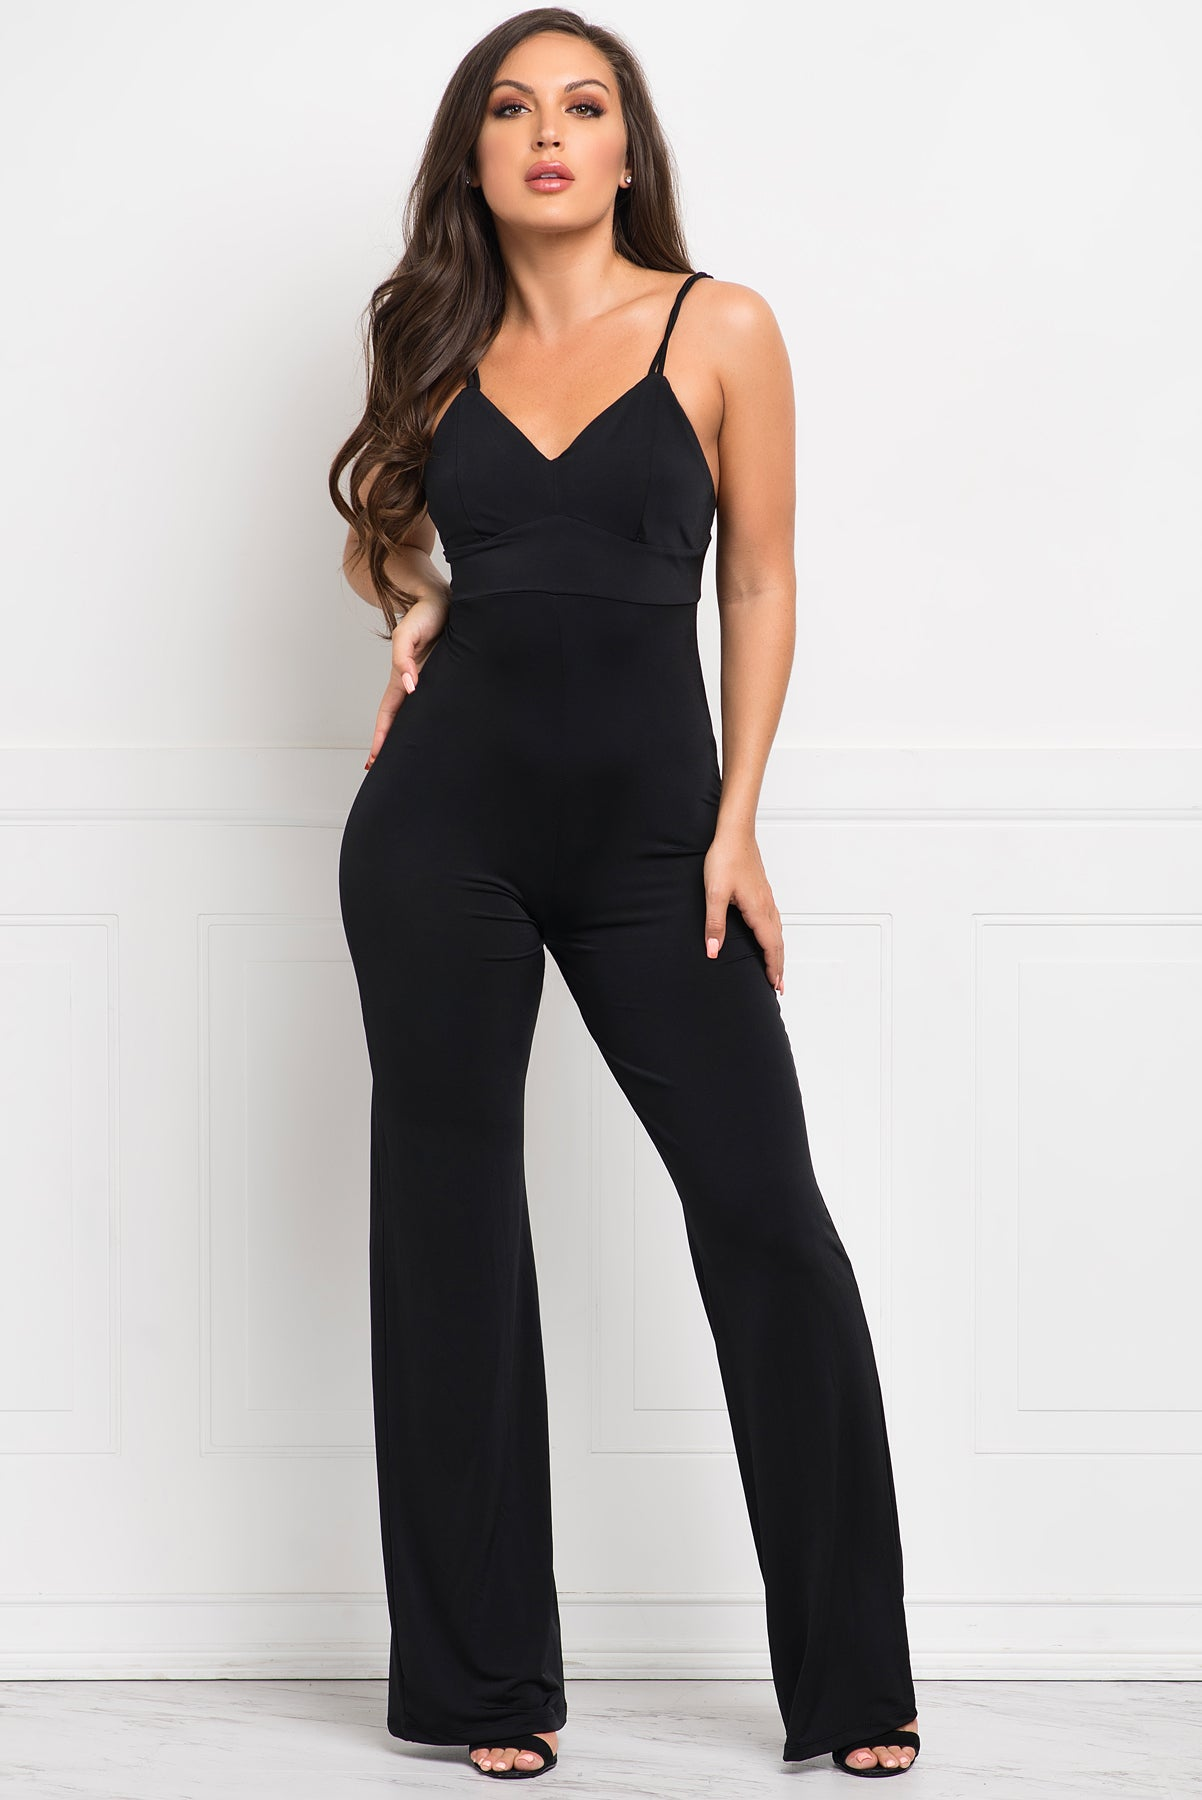 Tiara Jumpsuit - Black